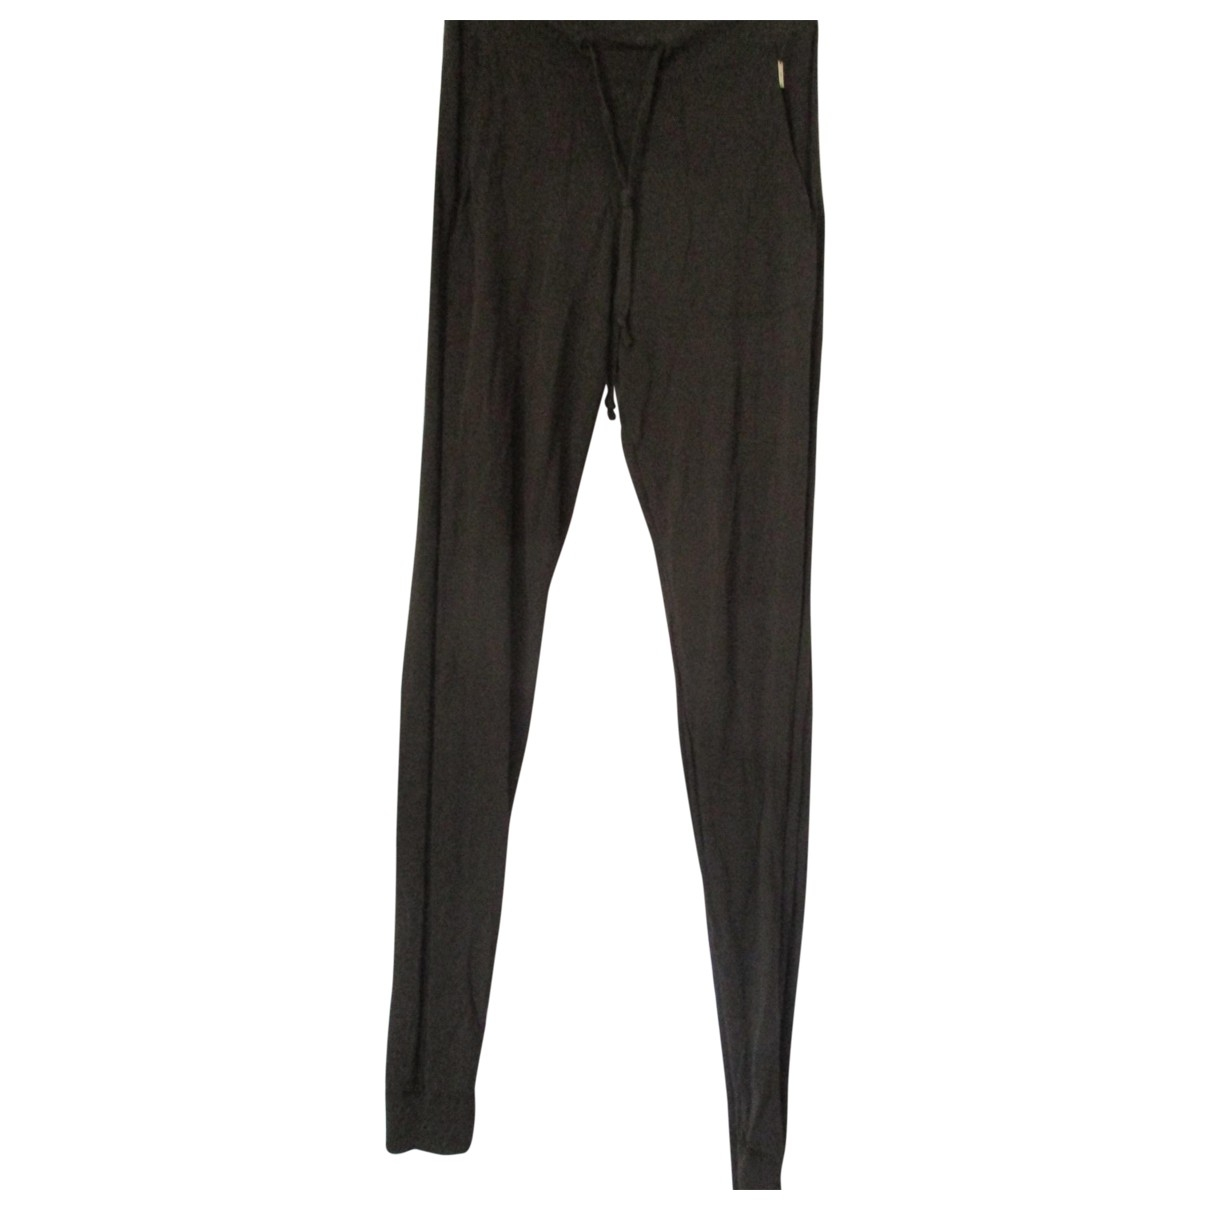 Woolrich \N Brown Cotton Trousers for Women M International